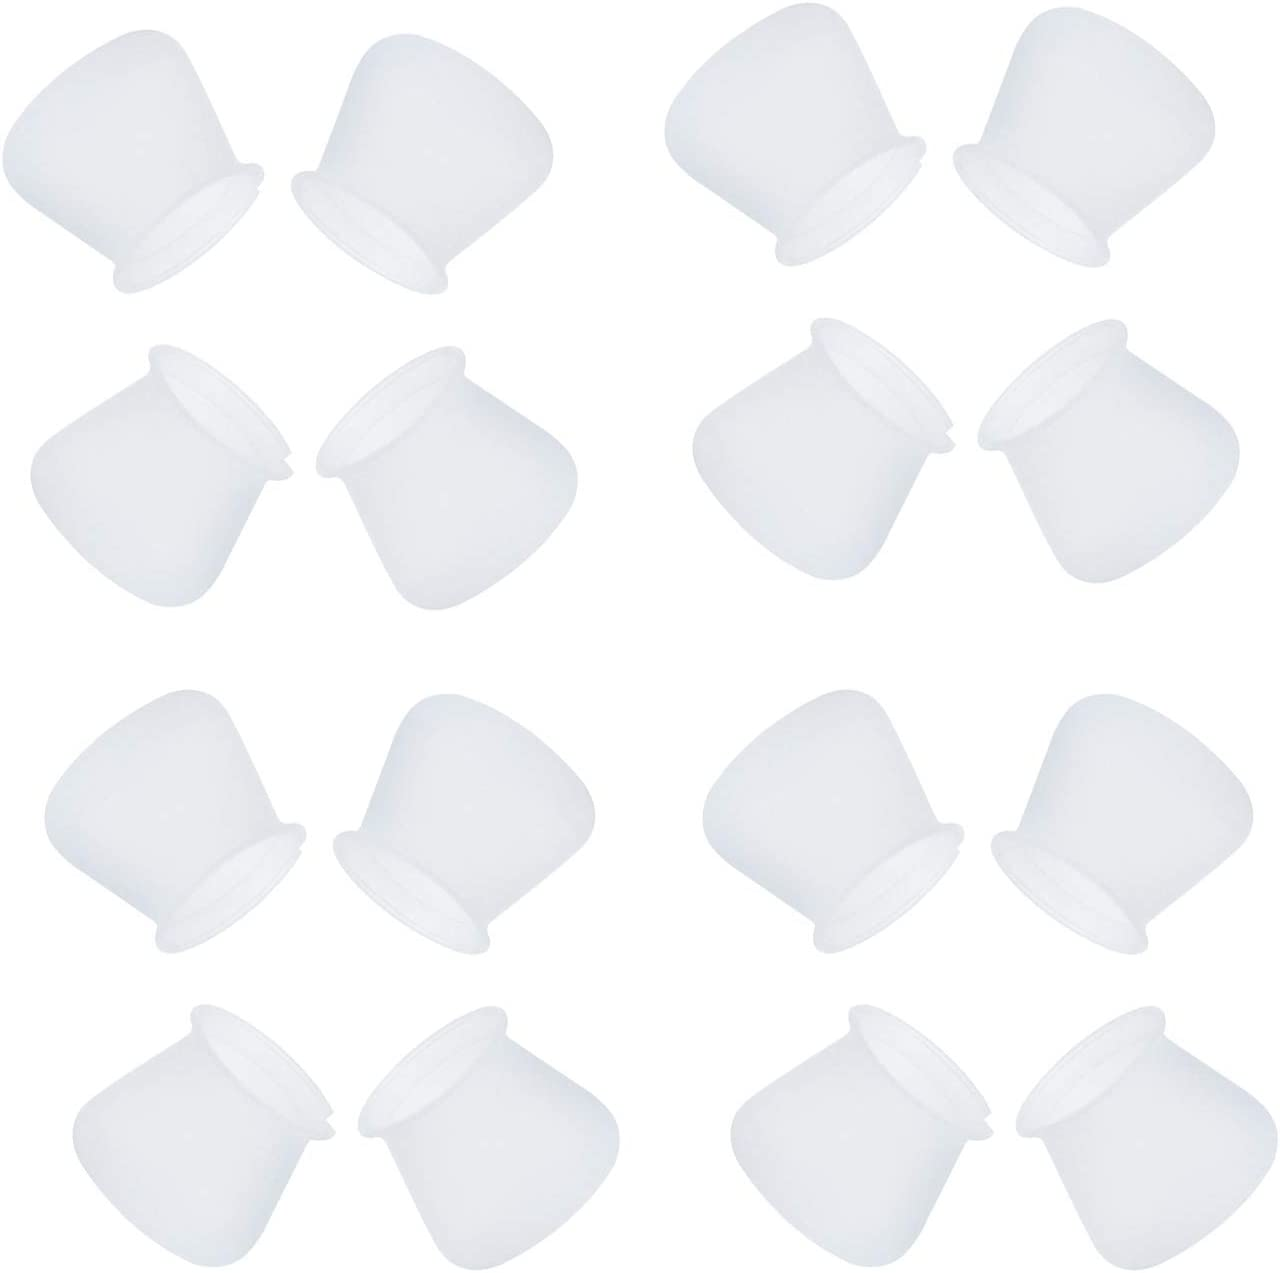 36 Pcs Furniture Silicon Protection Cover Chair Leg Caps Table Feet Cover Floor Protector Fit for round & square legs No Scratch No Noise Anti-slip Waterproof (Matte White)